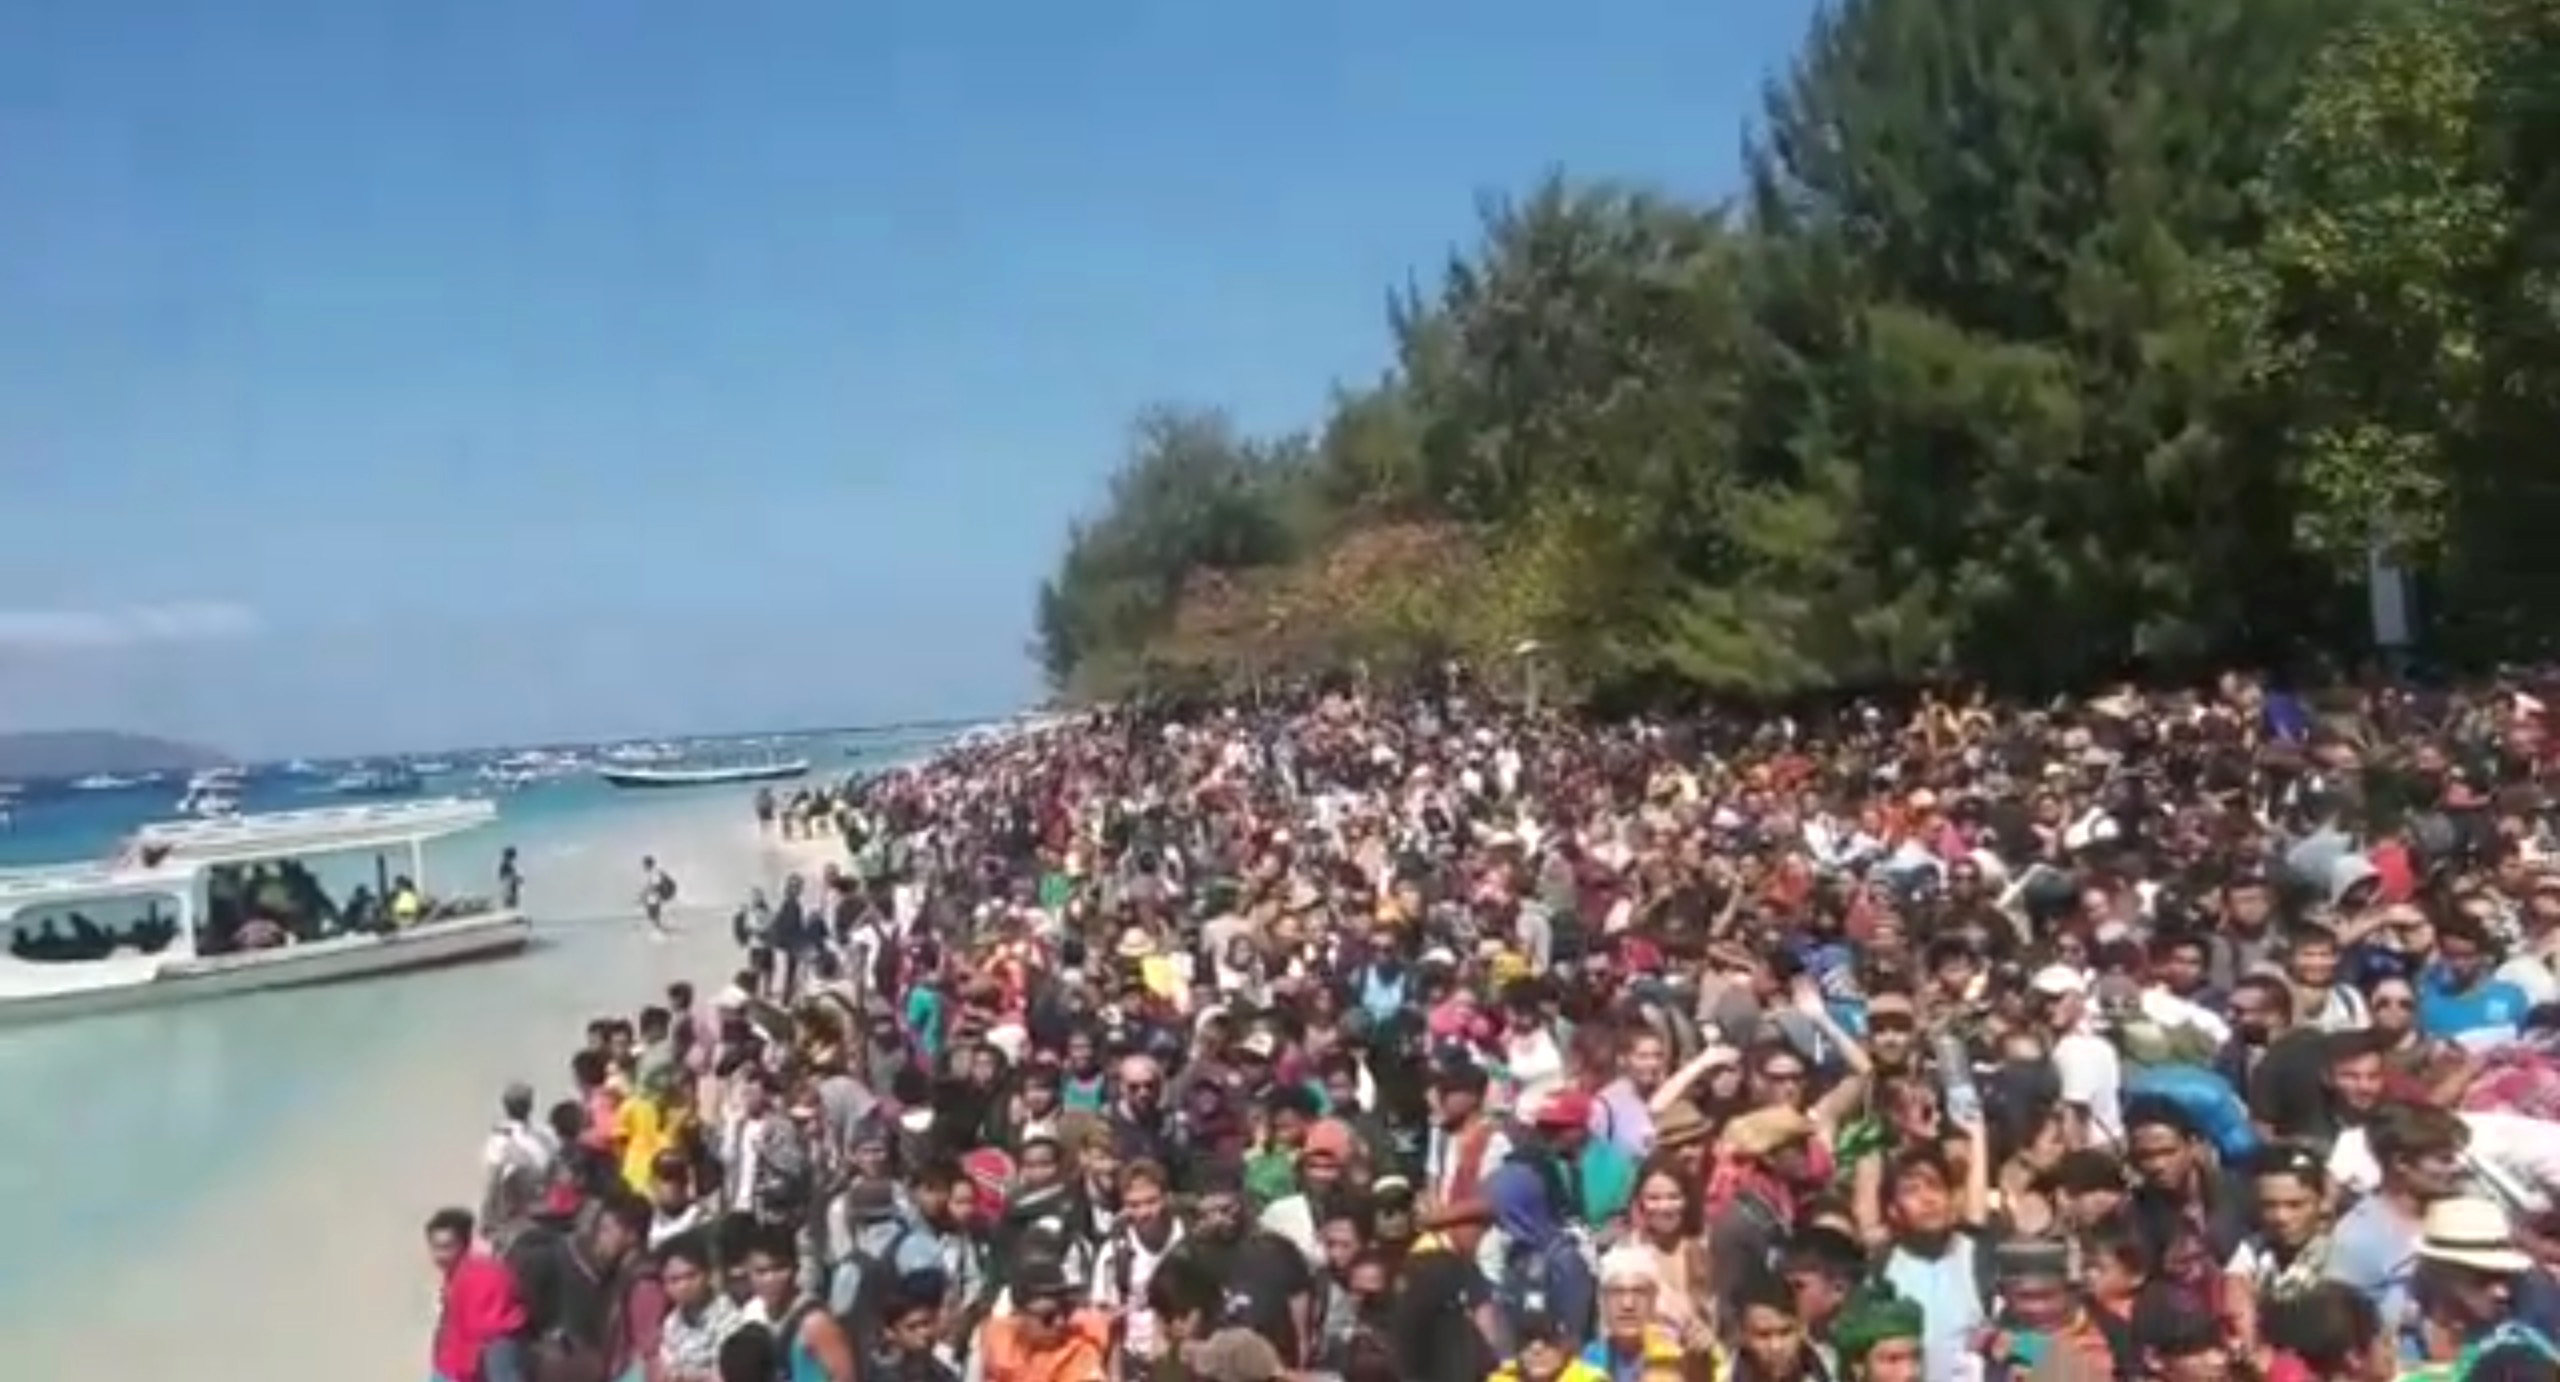 People crowd on the shore as they attempt to leave the Gili Islands after an earthquake Gili Trawangan, in Lombok, Indonesia, August 6, 2018, in this still image taken from a video. Indonesia Water Police/Handout/via REUTERS